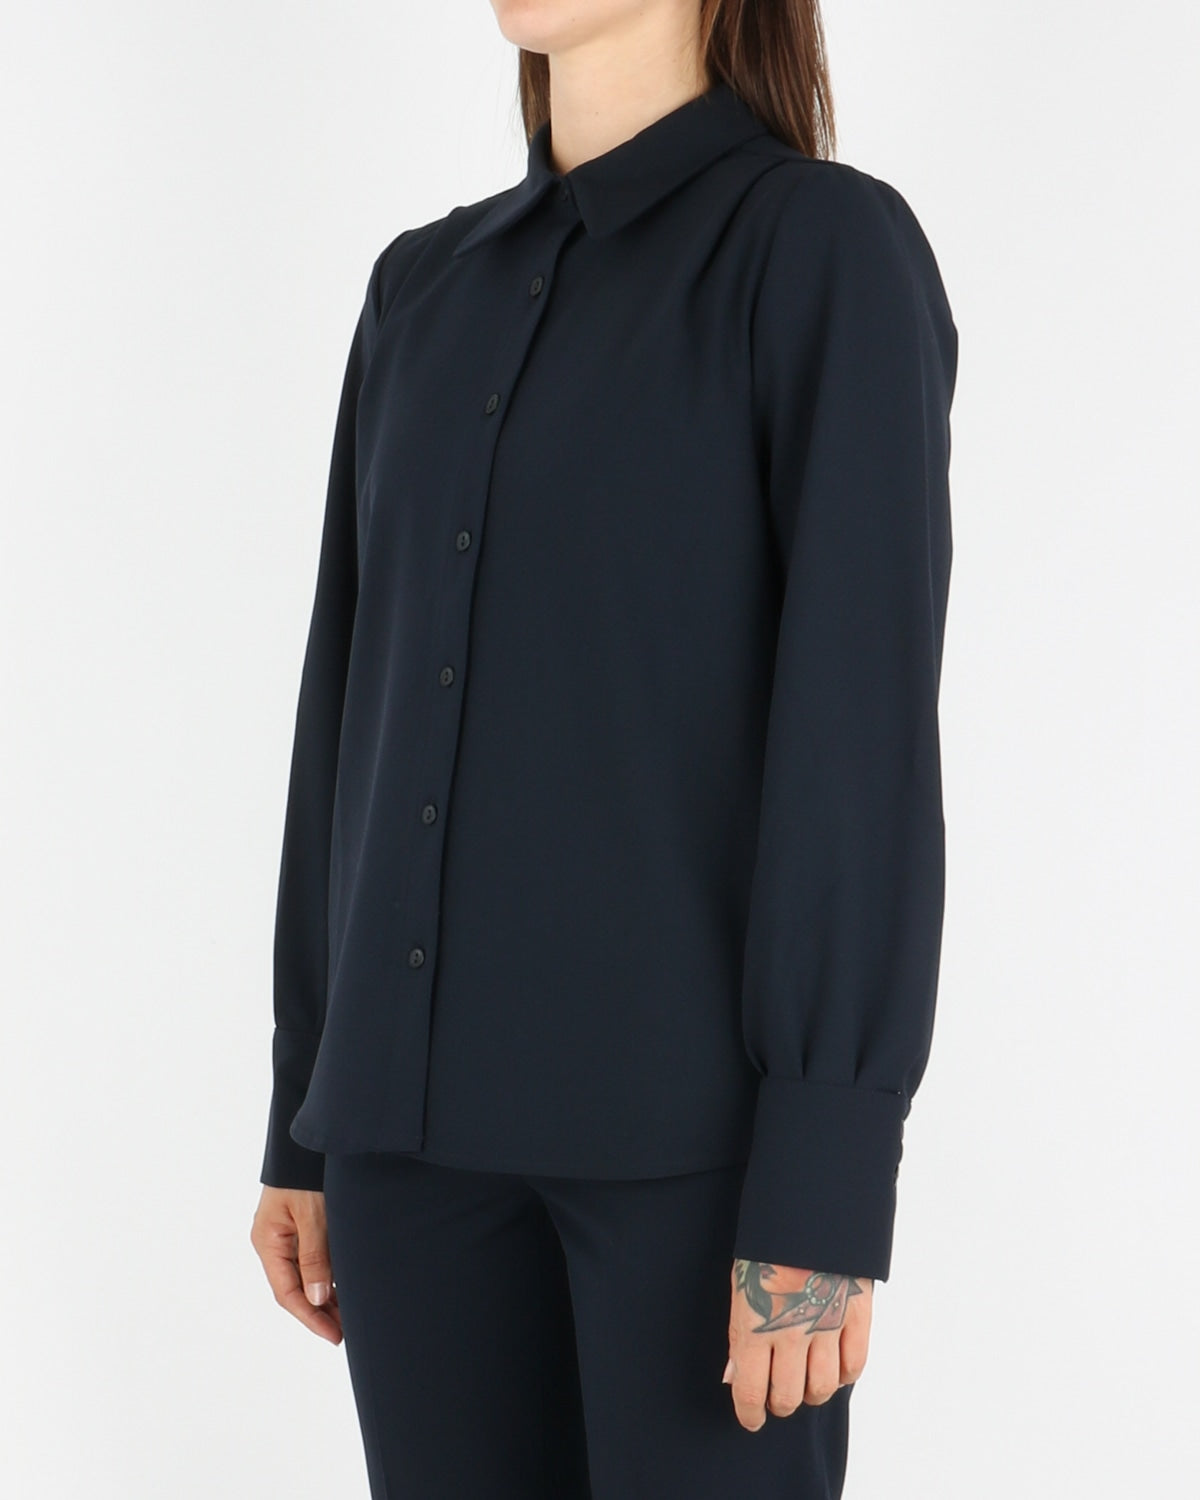 anecdote_becca blouse_navy_view_2_4